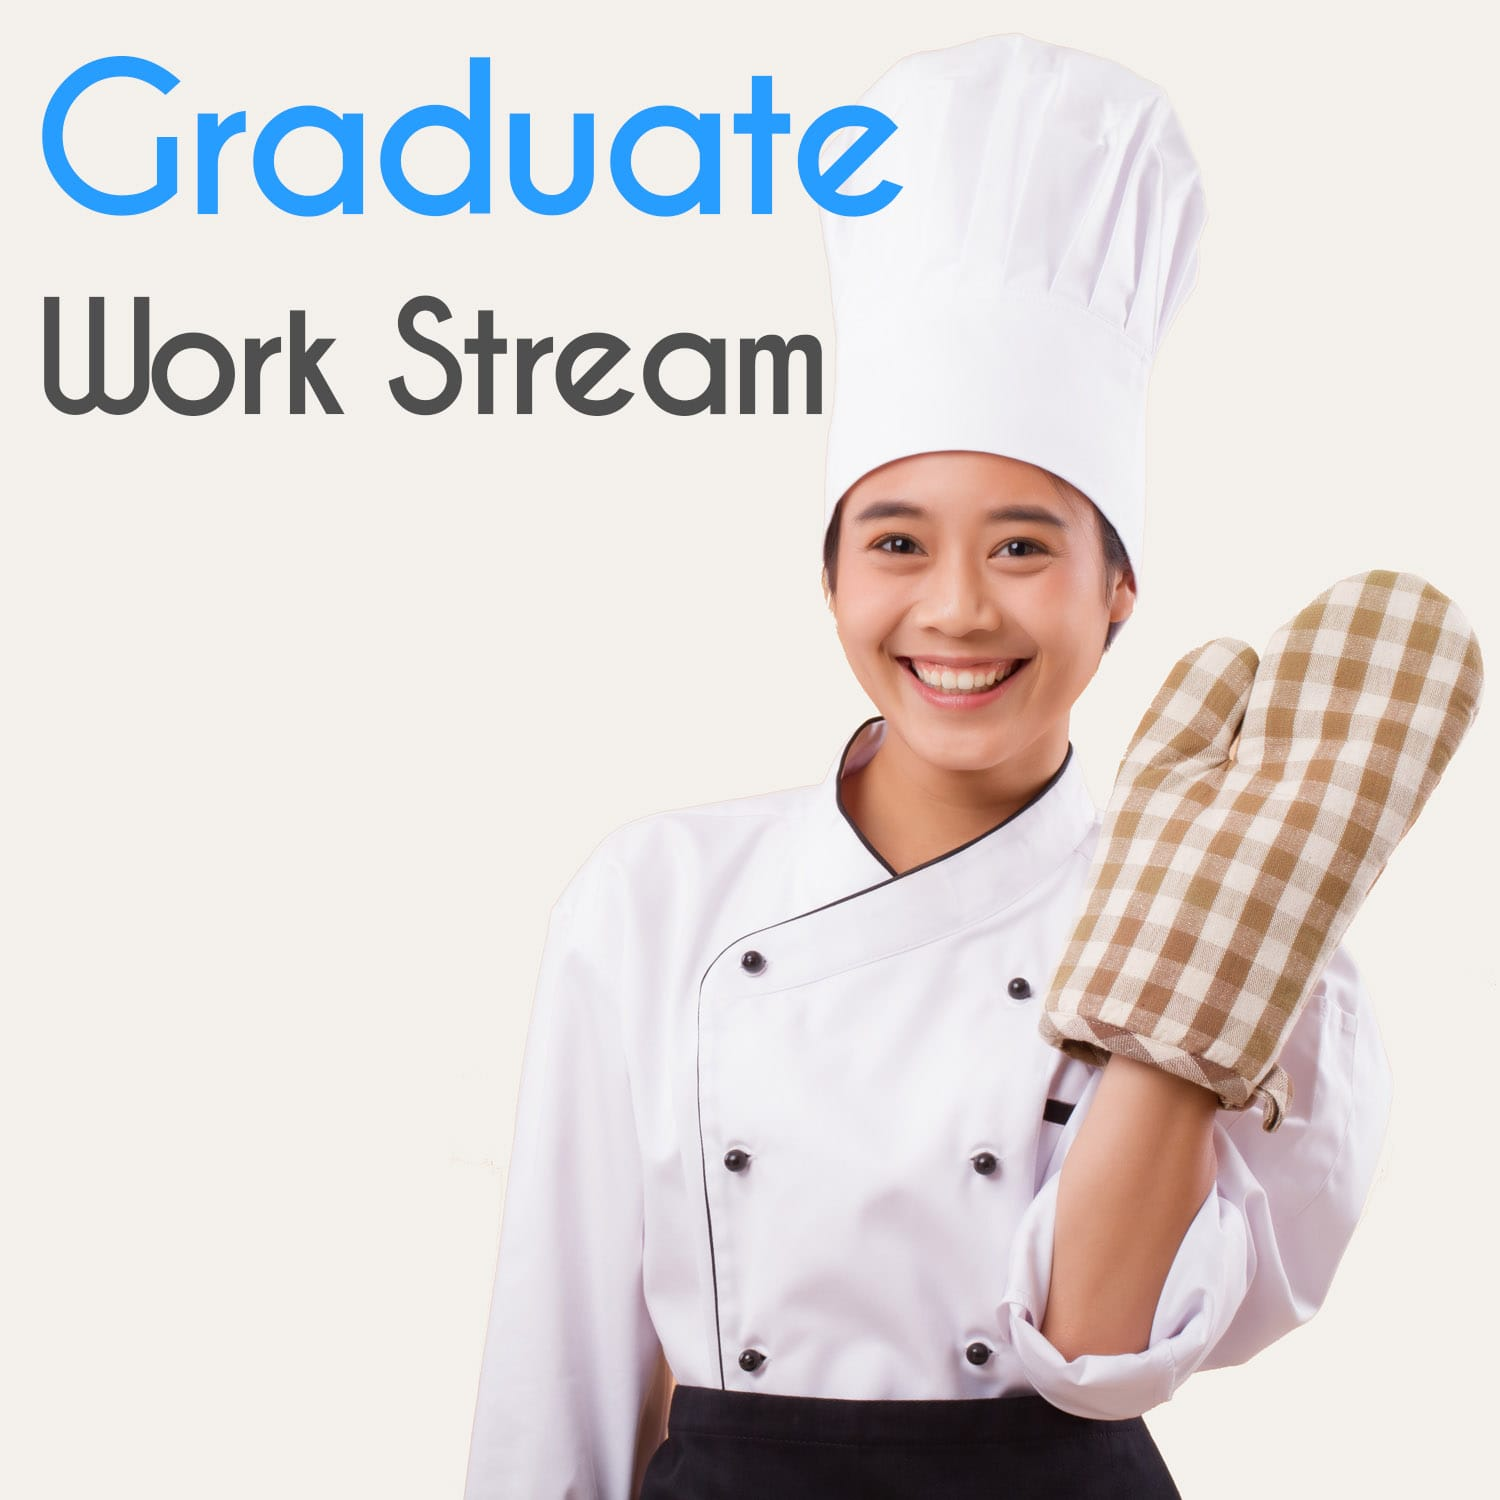 485 visa Graduate Work Stream